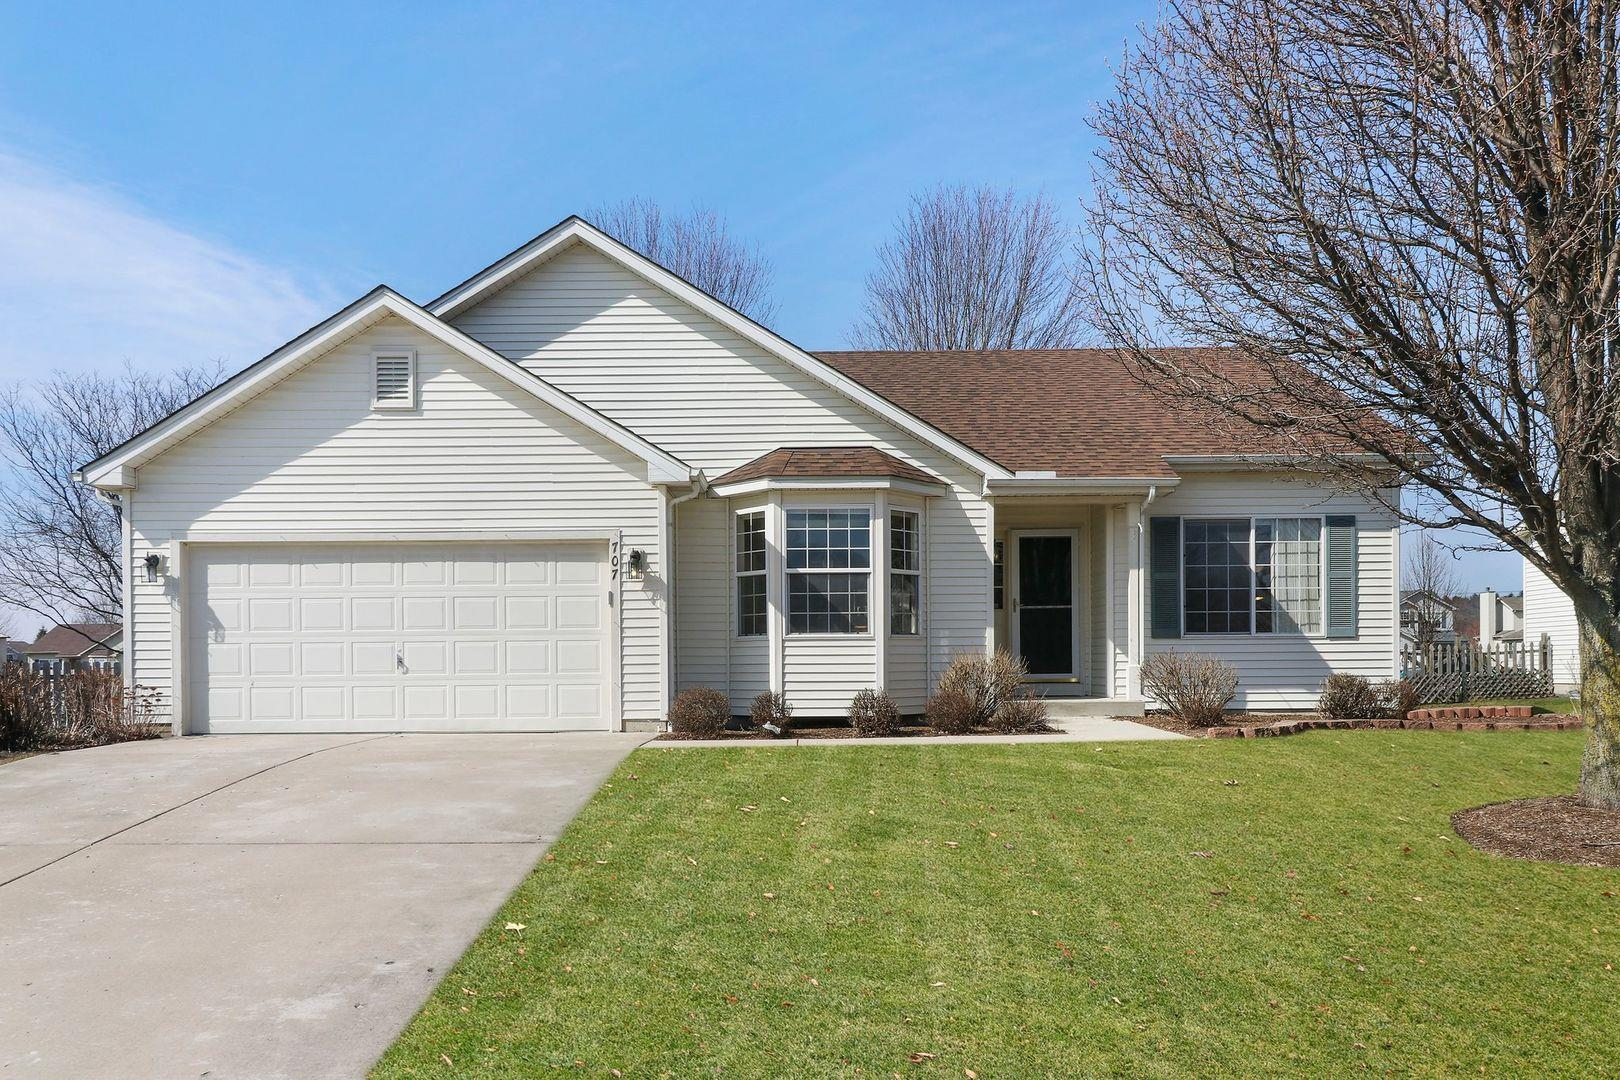 707 Wedgewood Trail, McHenry, IL 60050 - #: 11020642